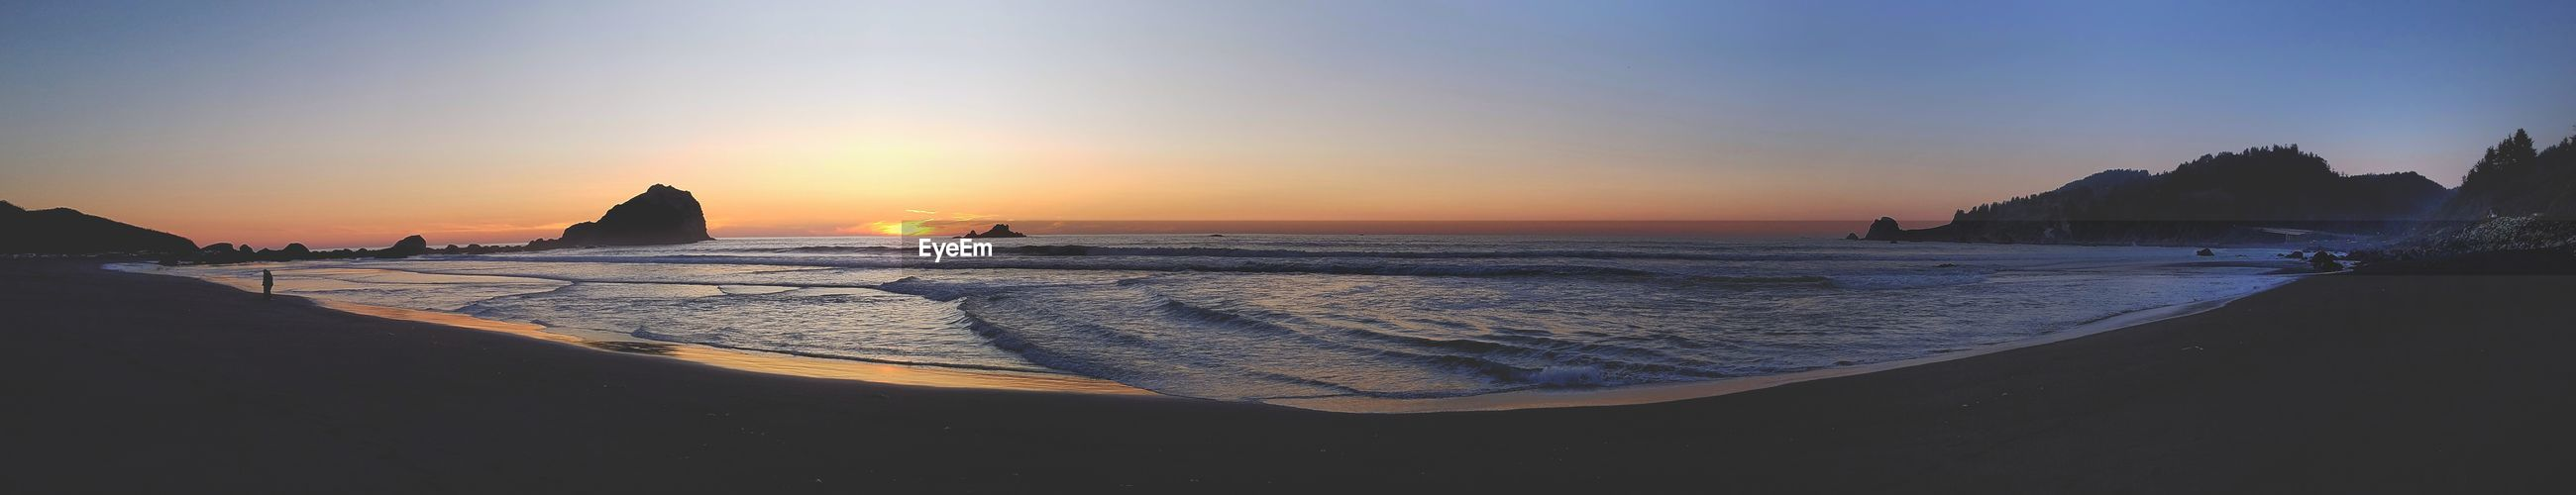 PANORAMIC VIEW OF BEACH AGAINST SKY DURING SUNSET